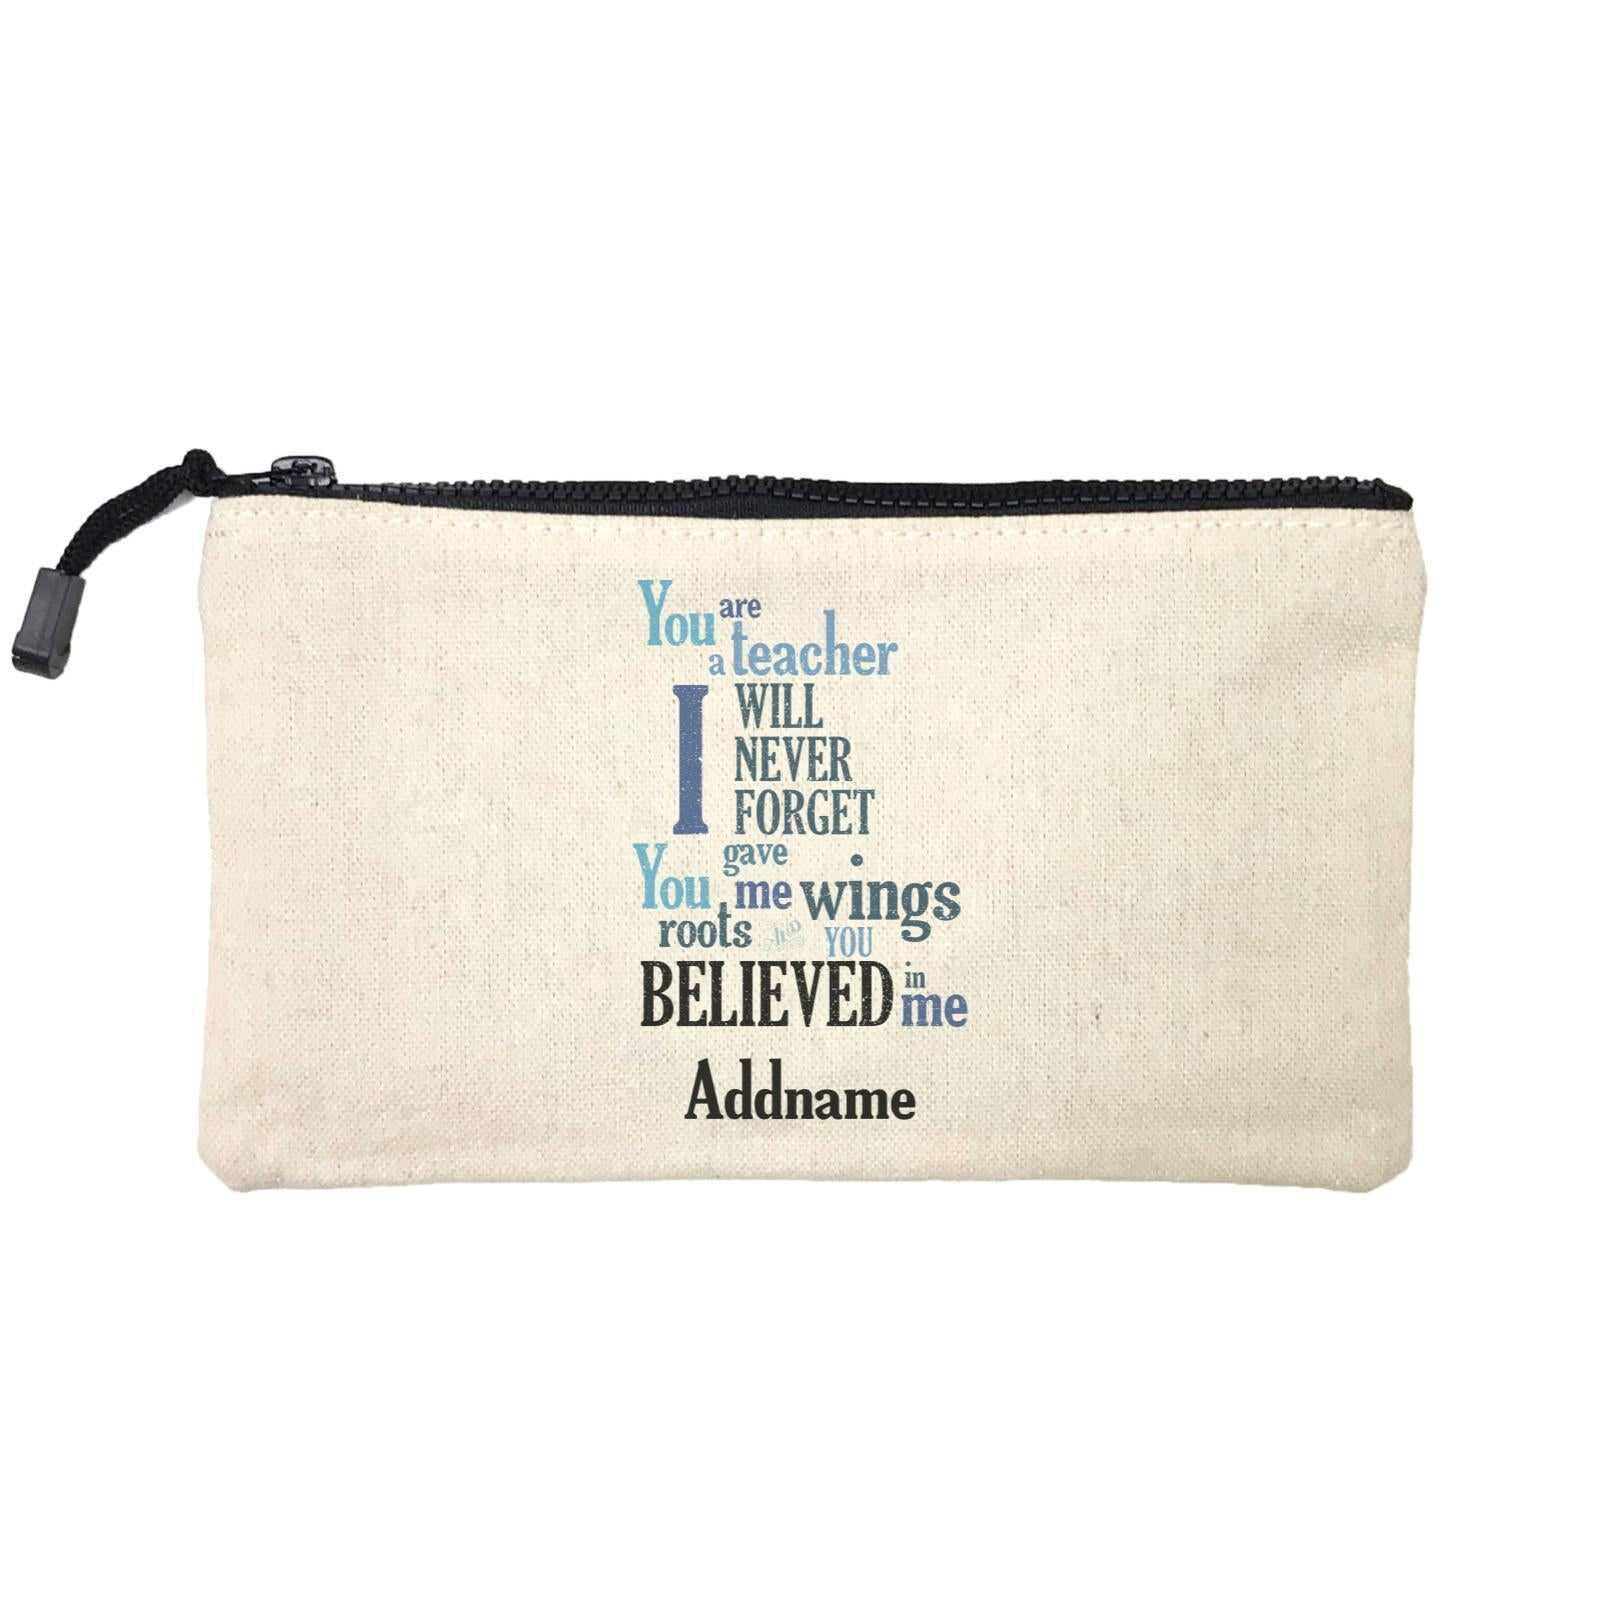 Super Teachers I Will Never Forget You Gave Me Wings Roots And You Believed In Me Addname Mini Accessories Stationery Pouch